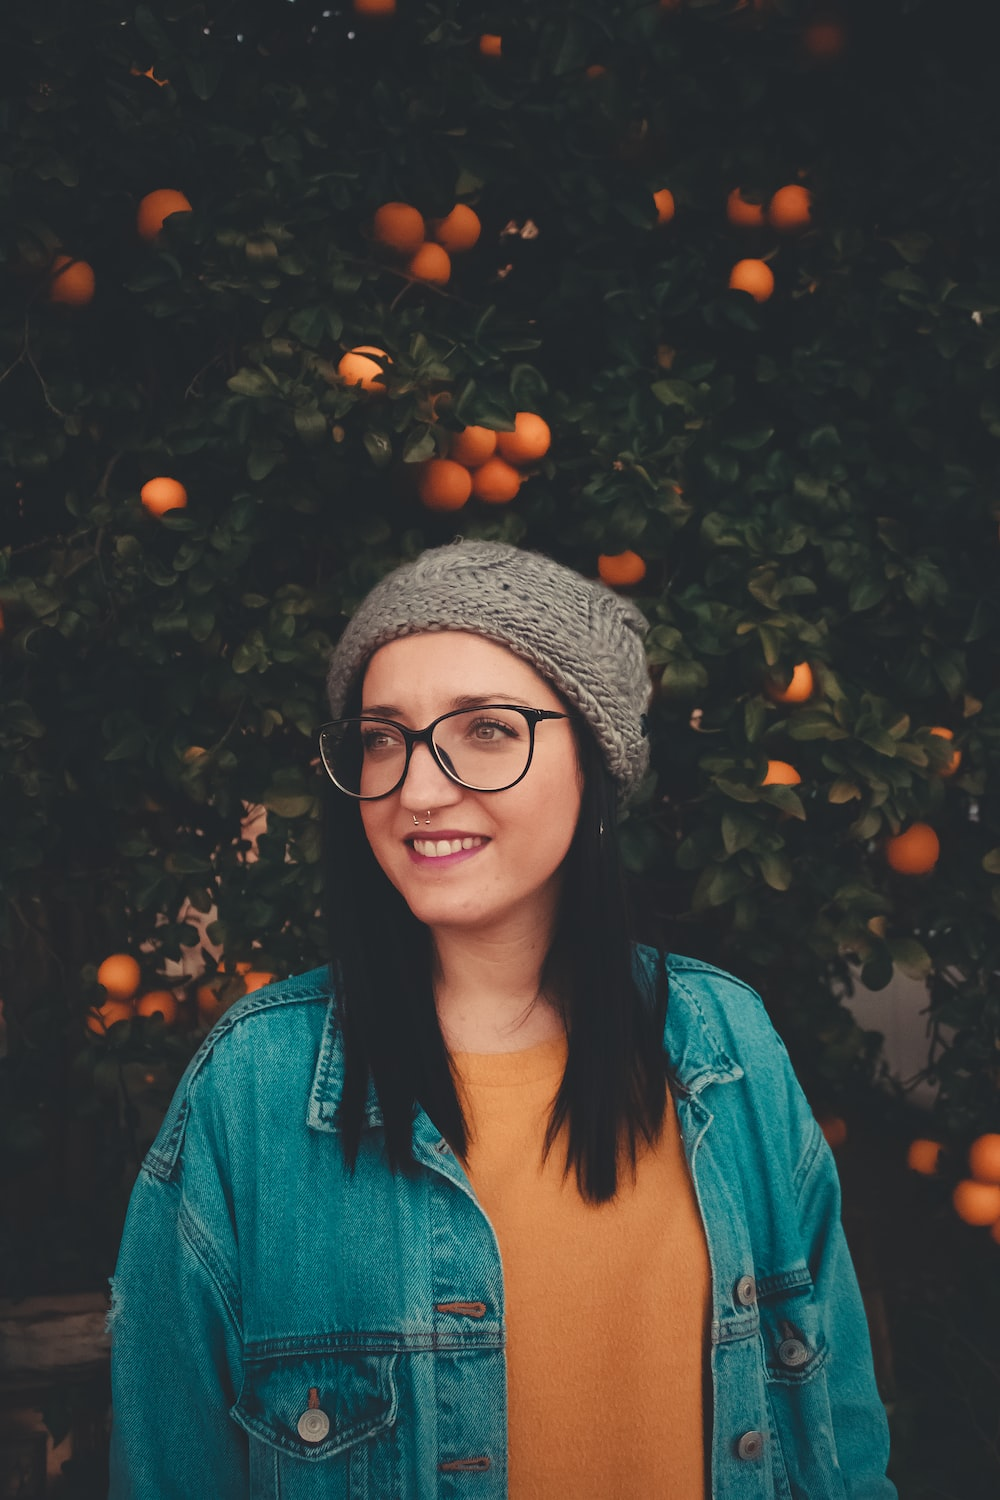 woman wearing blue denim jacket and grey beanie while standing near orange plant